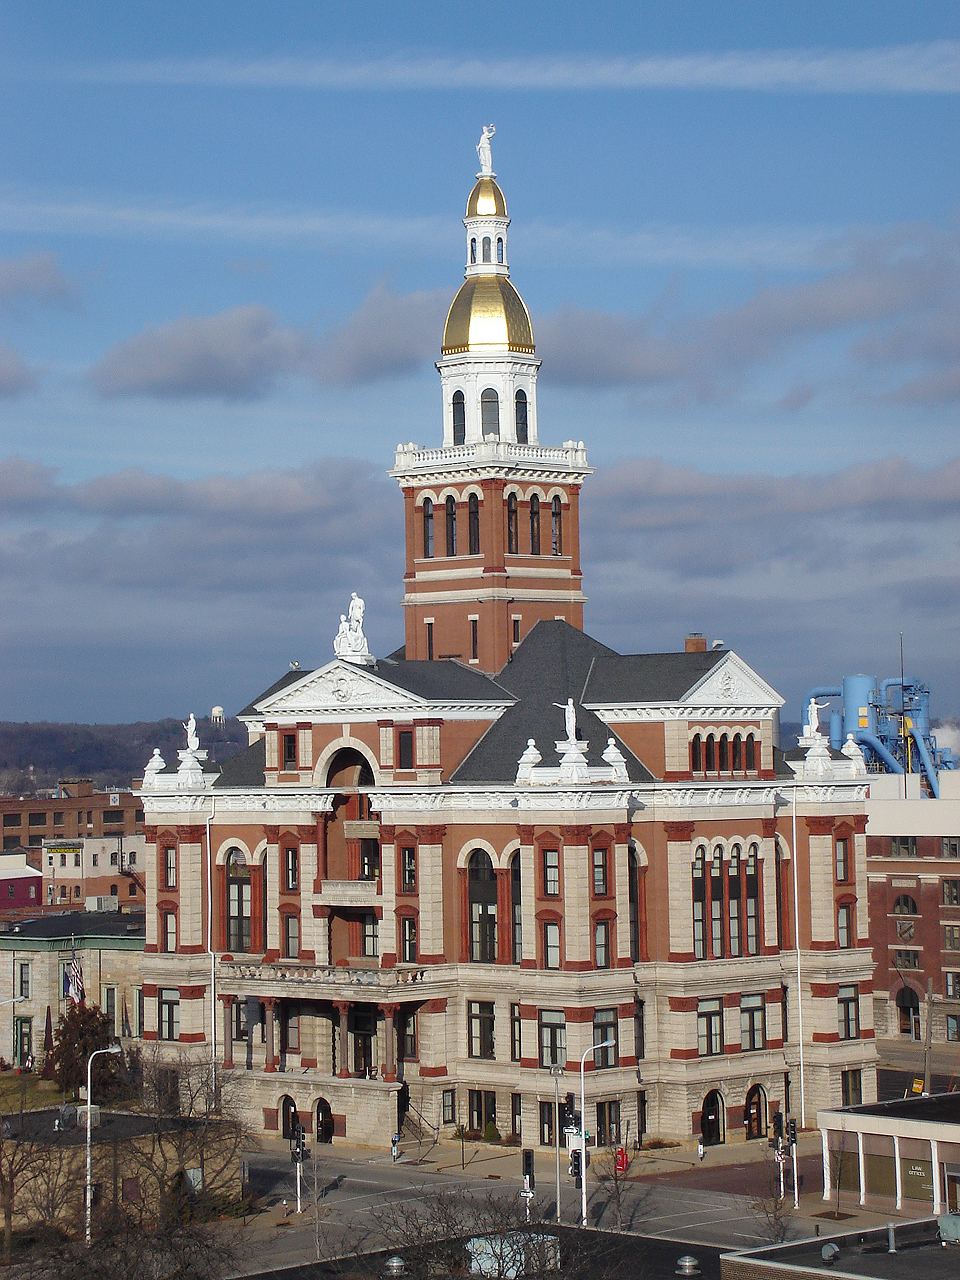 S 90 3 >> Dubuque County Courthouse - Wikipedia